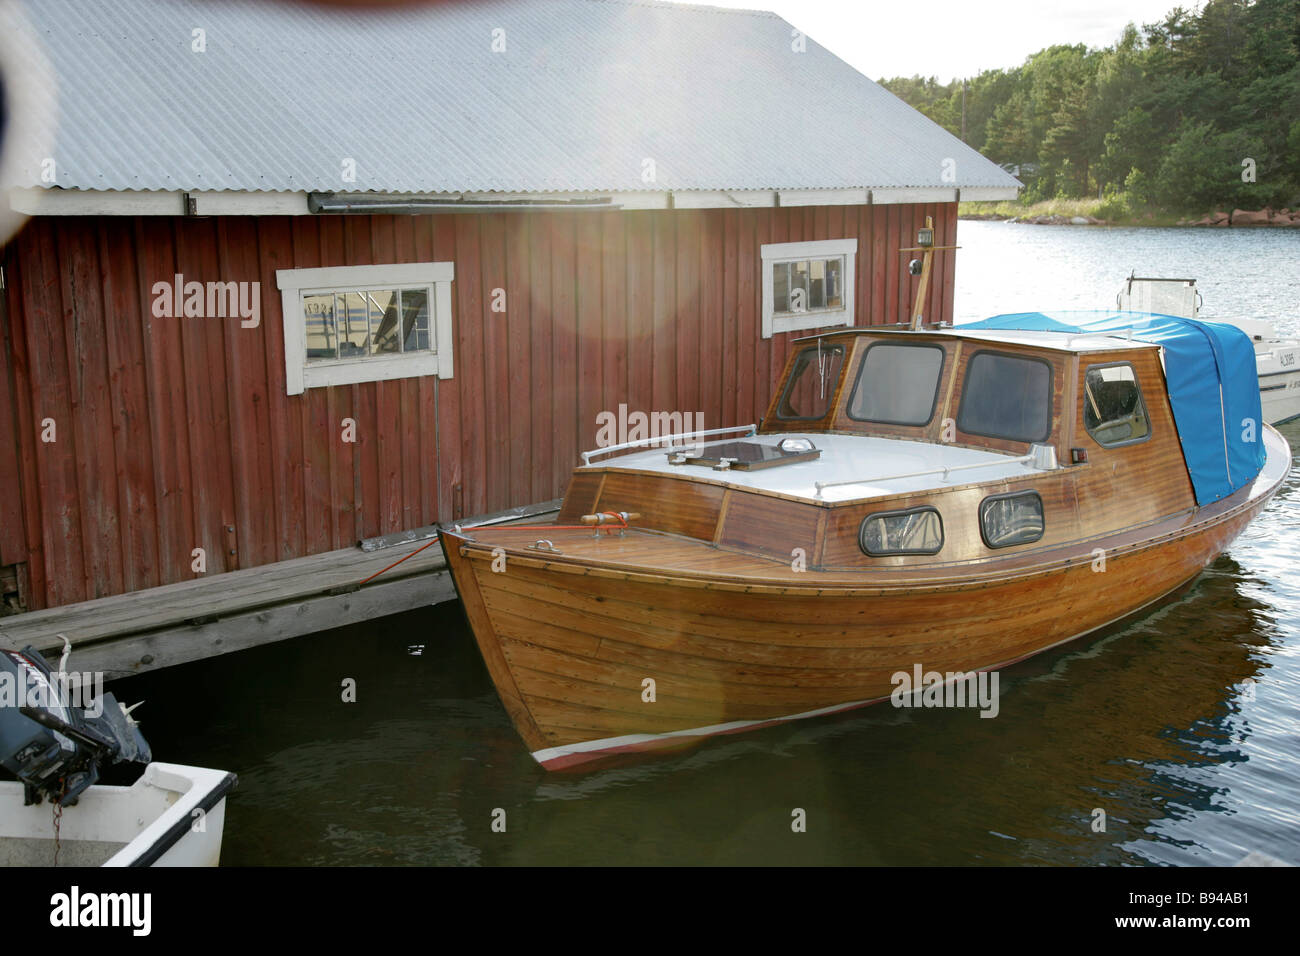 Boatsheds in Aland Stock Photo